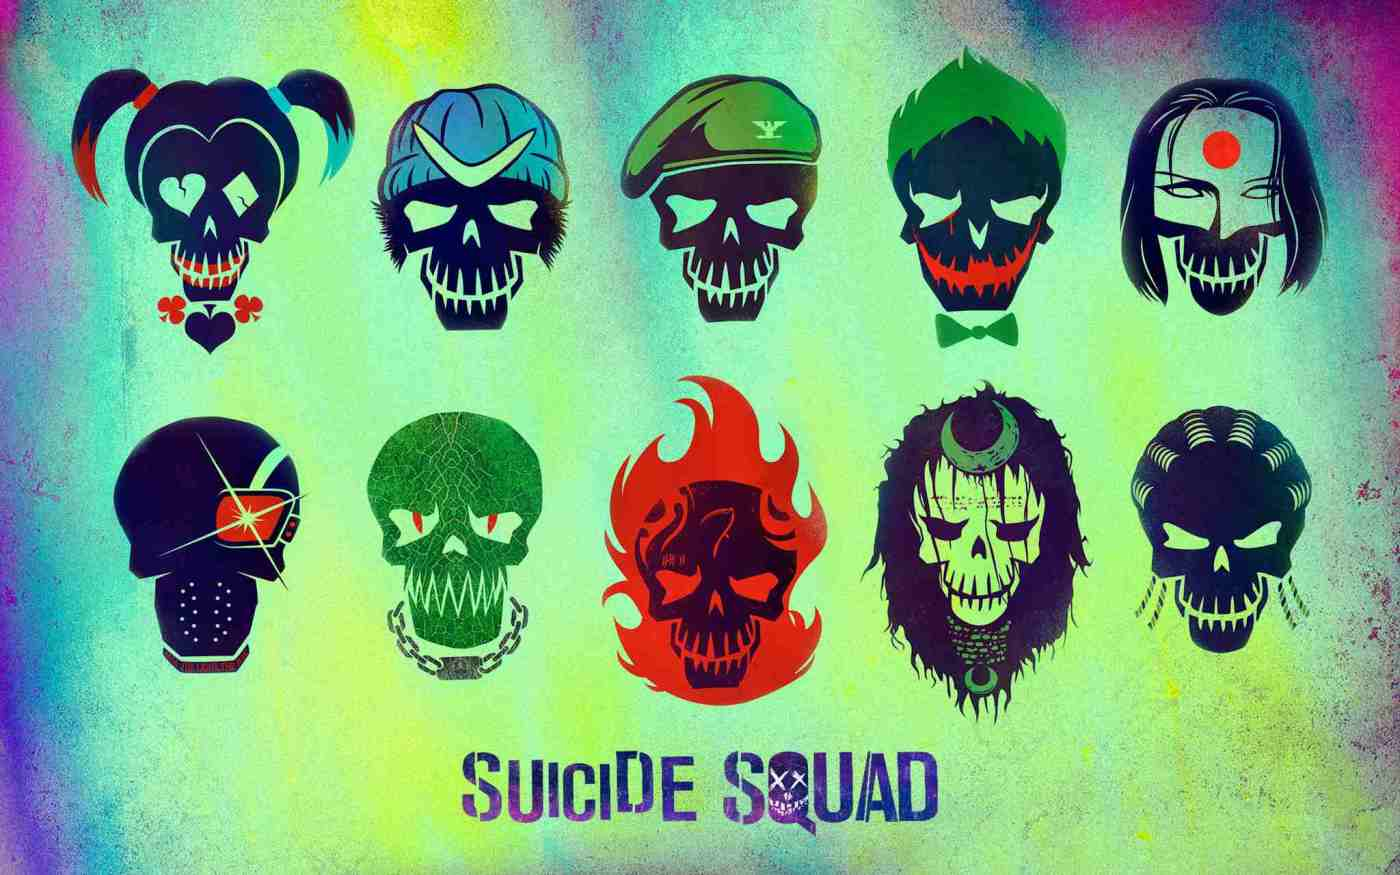 Suicide-Squad-All-Characters-Posters-001